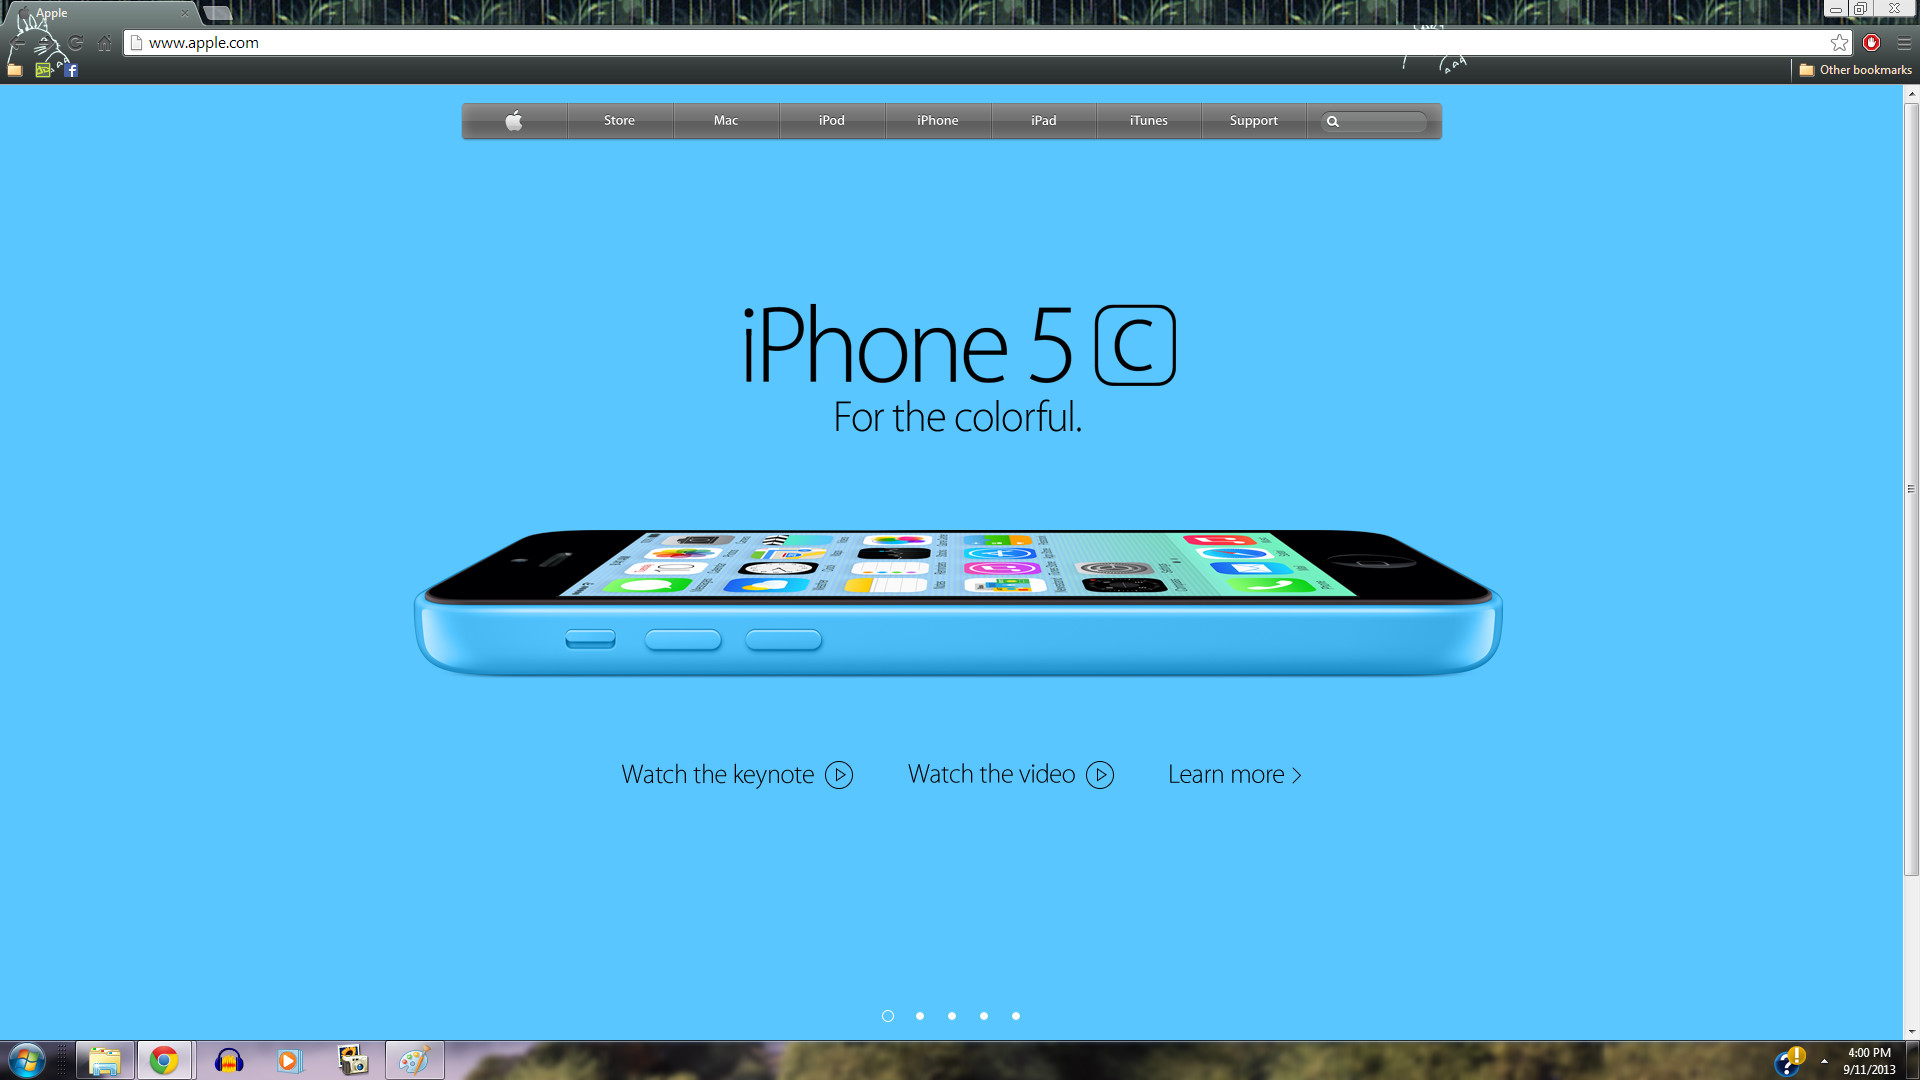 1920x1080 iPhone images iPhone 5c Blue Apple Homepage HD wallpaper and background  photos